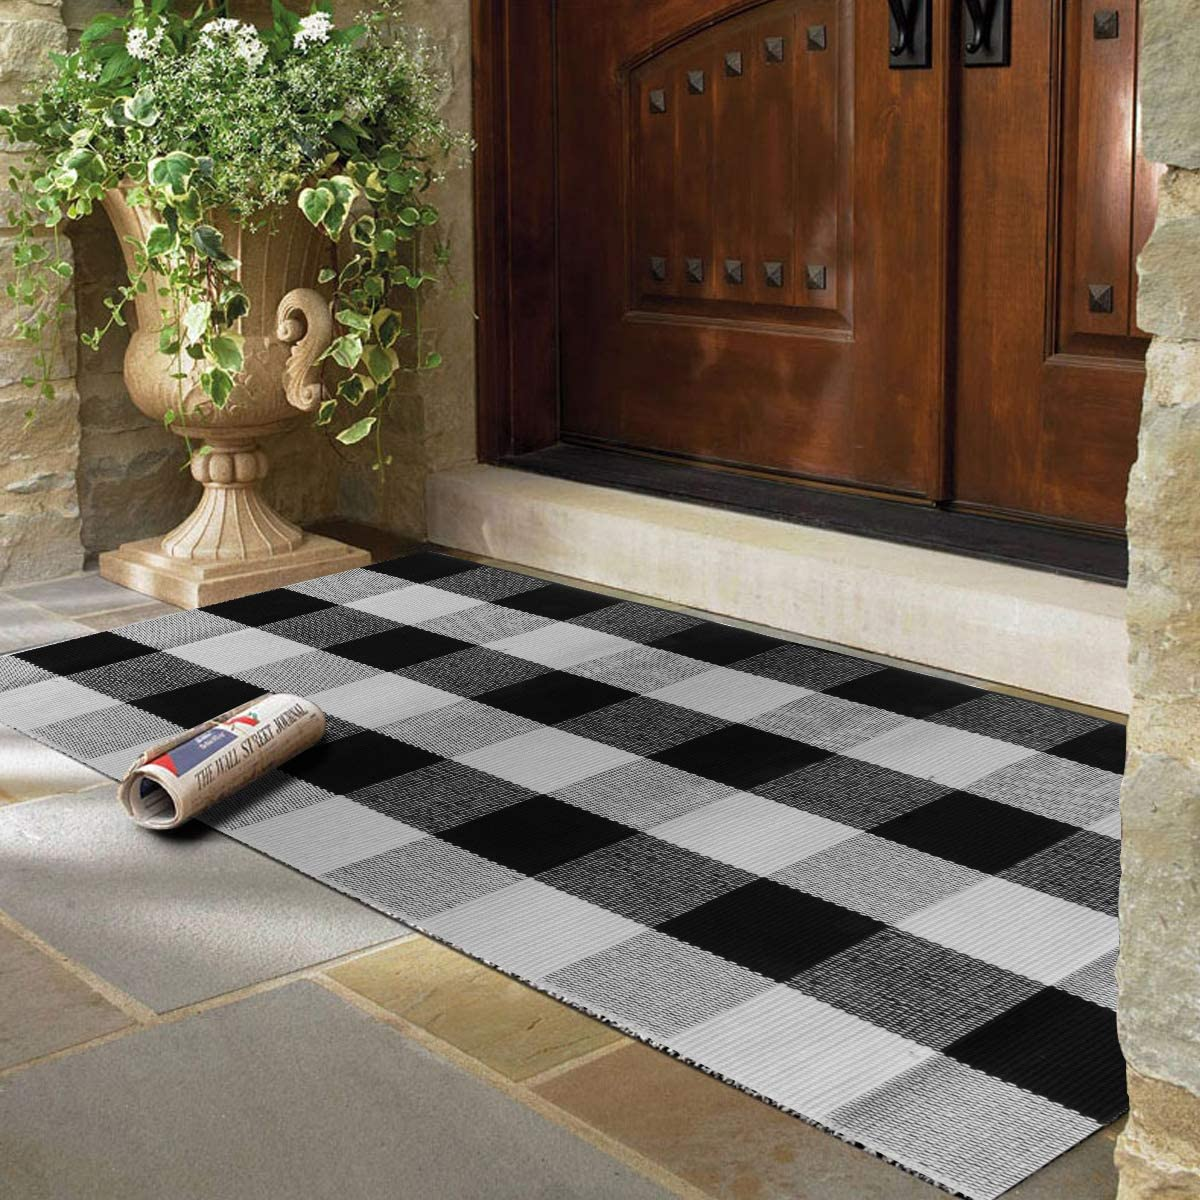 PENCK Buffalo Plaid Area Rug Indoor Outdoor Cotton Check Doormat Hand-Woven Washable Floor Porch Carpet for Front Door Kitchen Entryway Laundry Entrance Way, 59 Inch x 35.4 Inch, Black White